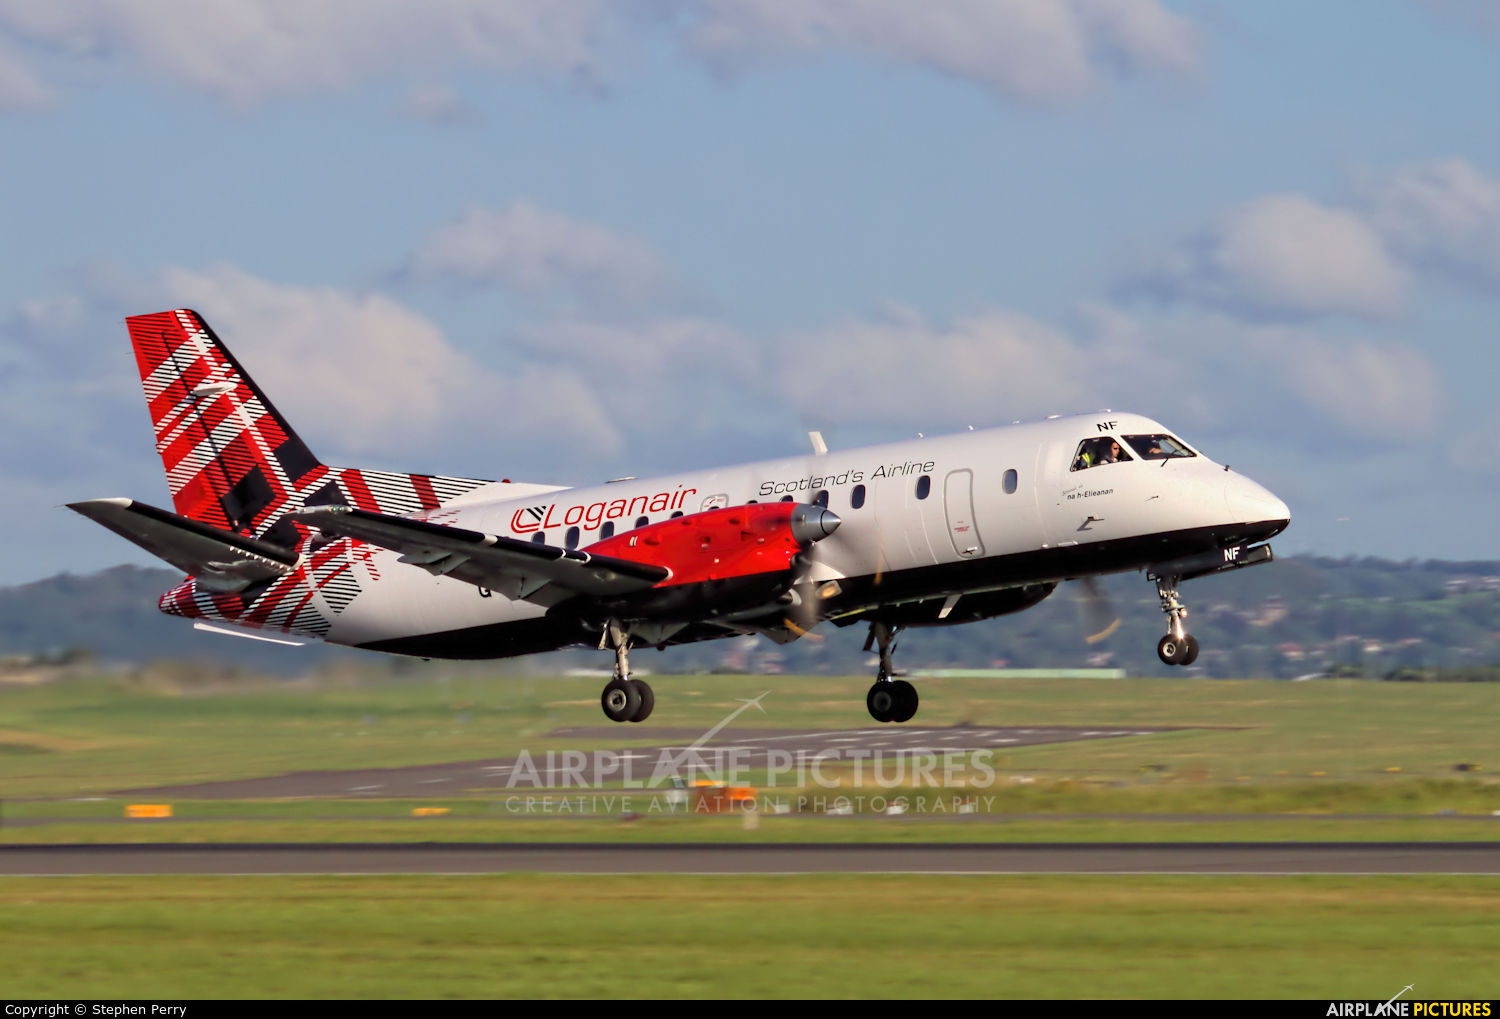 Loganair G-LGNF aircraft at Edinburgh